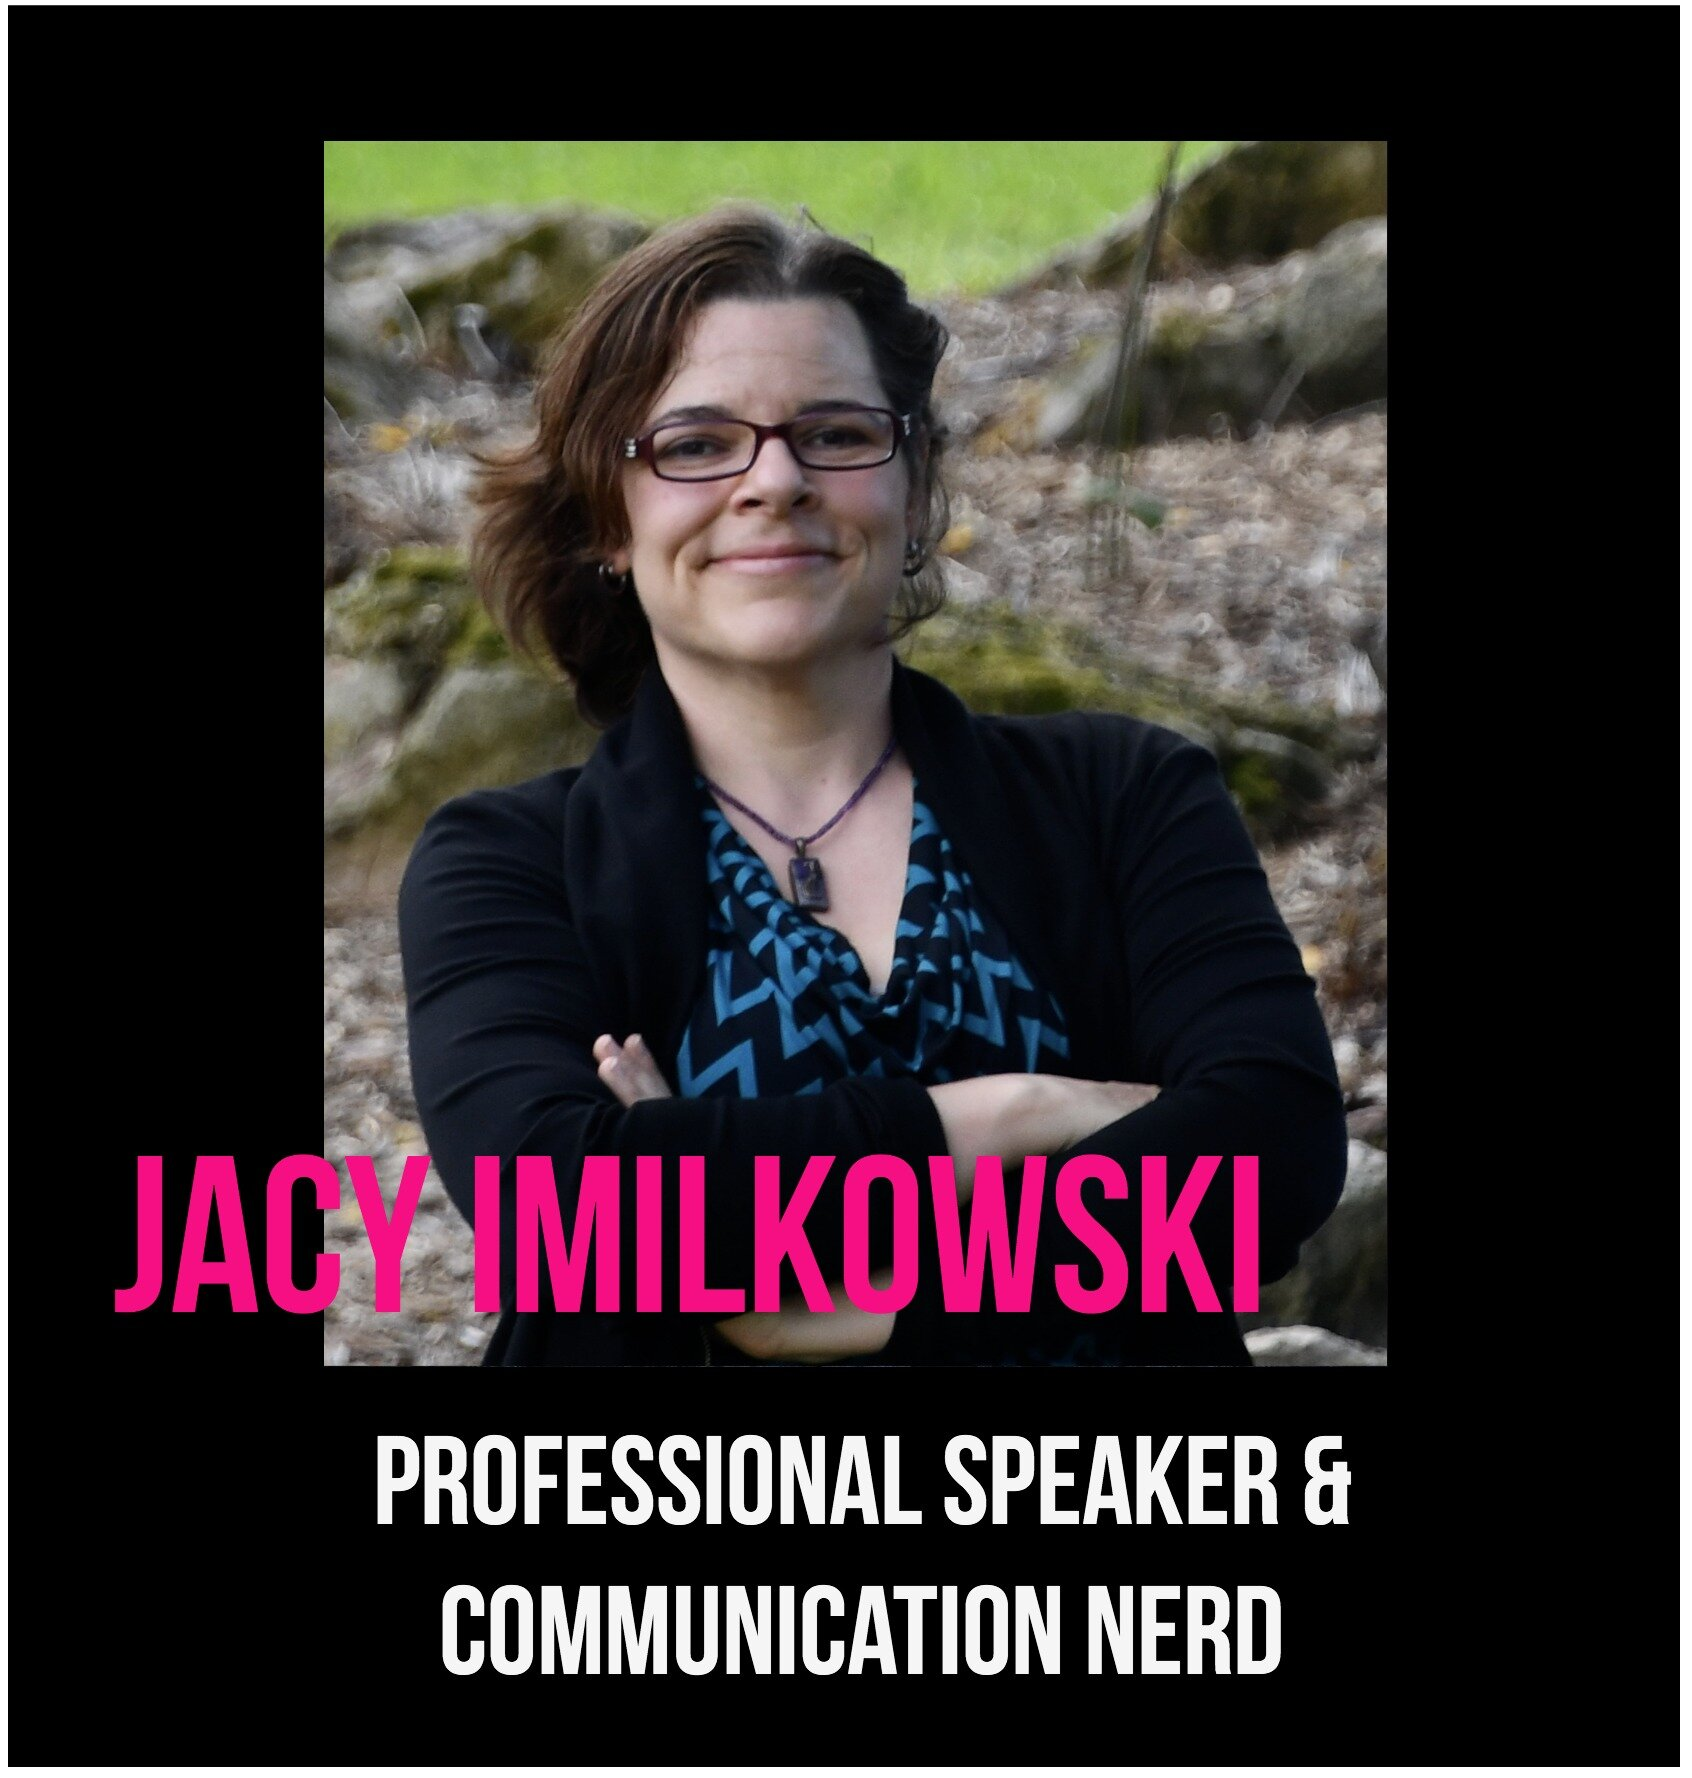 THE JILLS OF ALL TRADES™ JACY IMILKOWSKI Professional Speaker and Communications Nerd